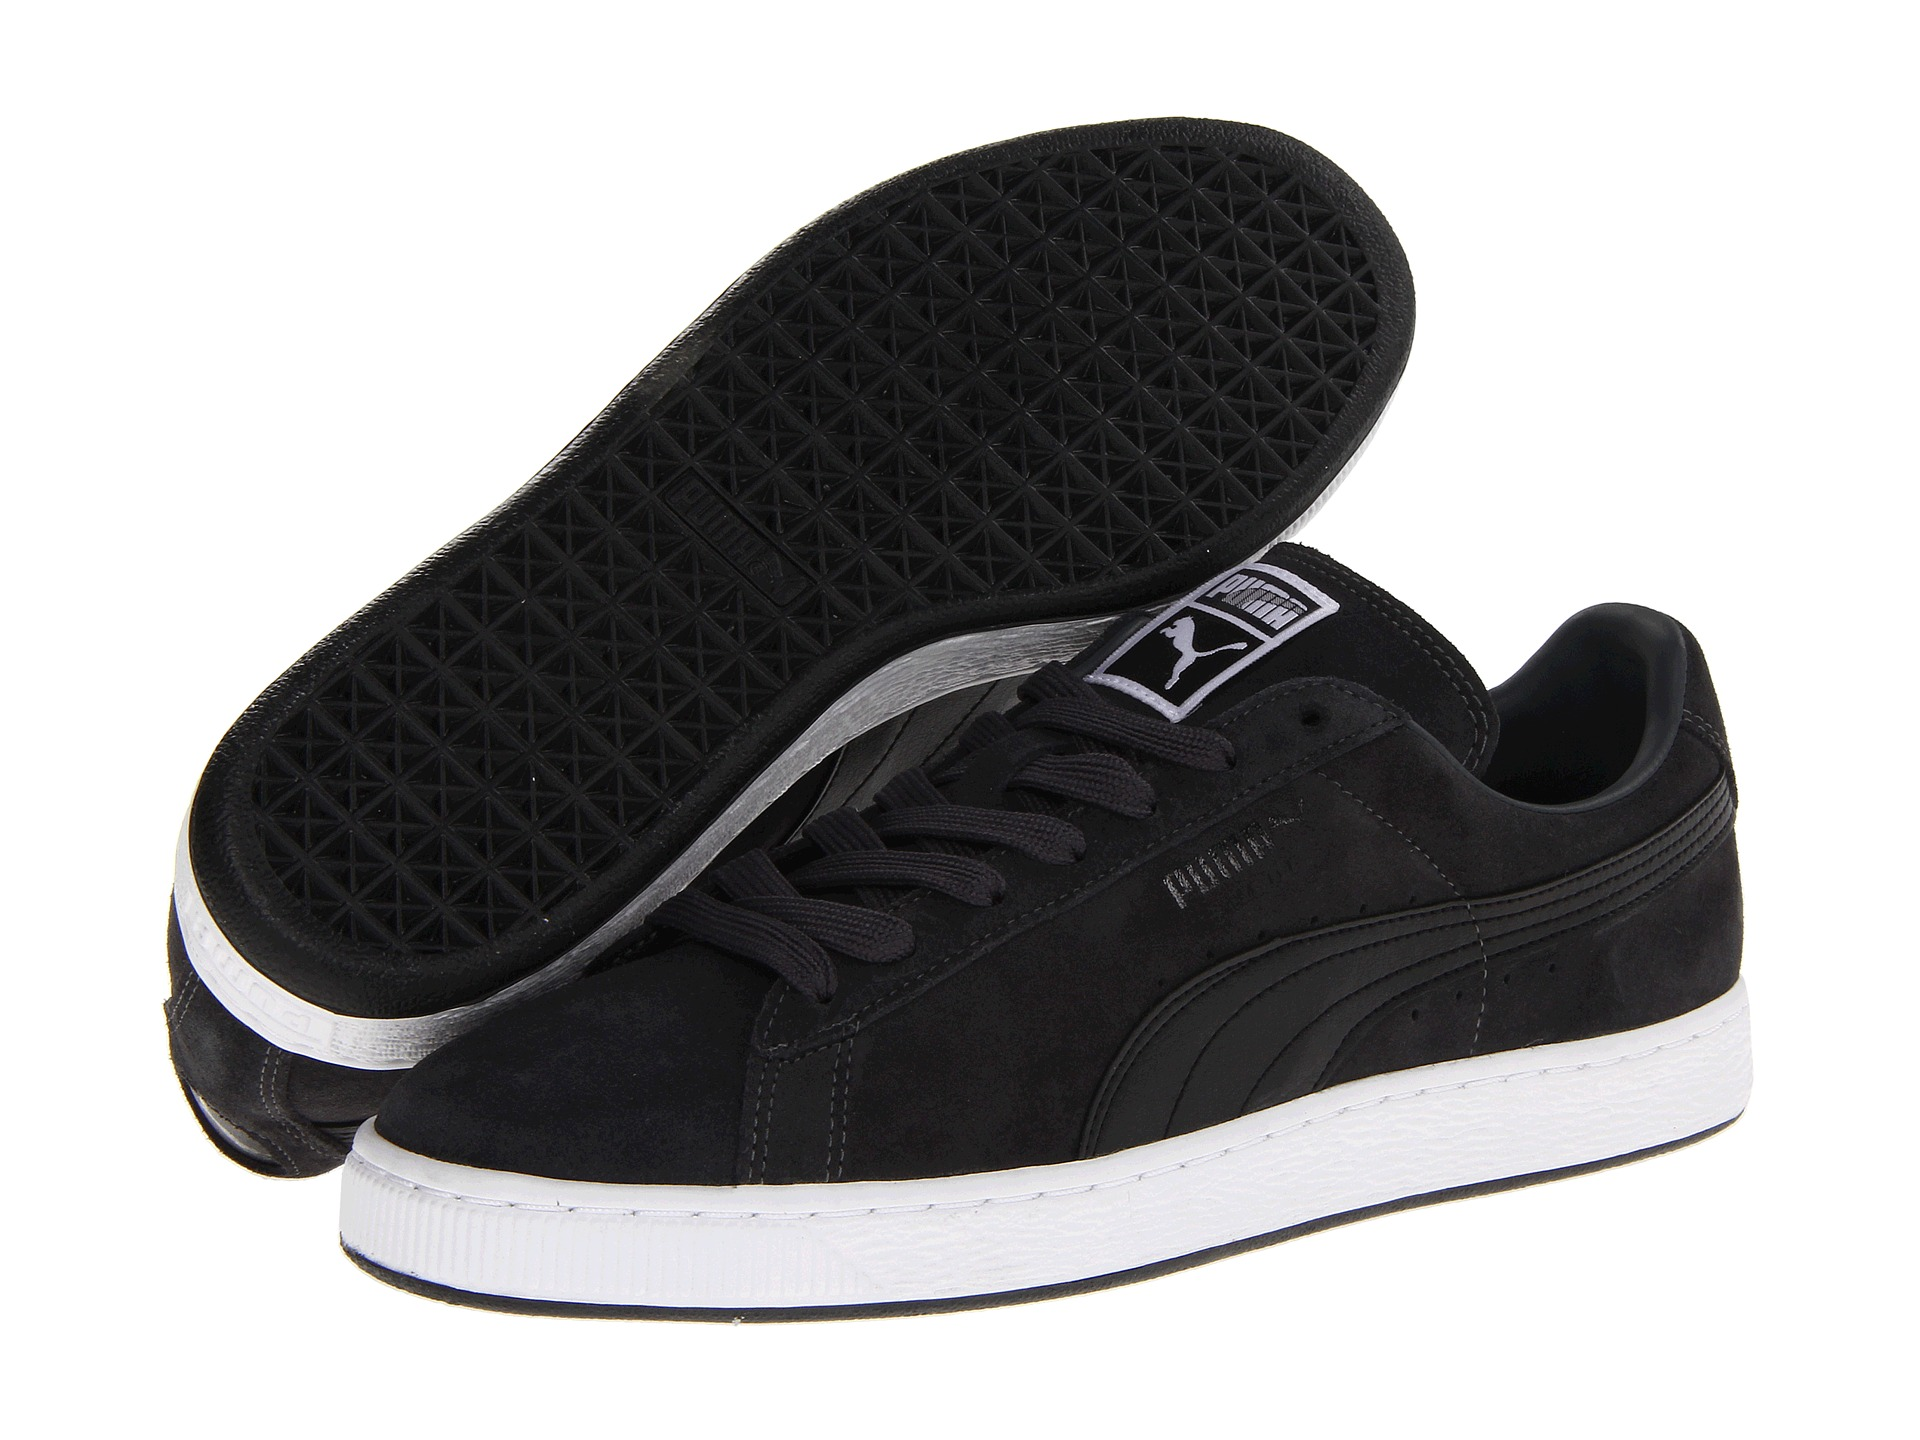 puma suede classic shoes shipped free at zappos. Black Bedroom Furniture Sets. Home Design Ideas